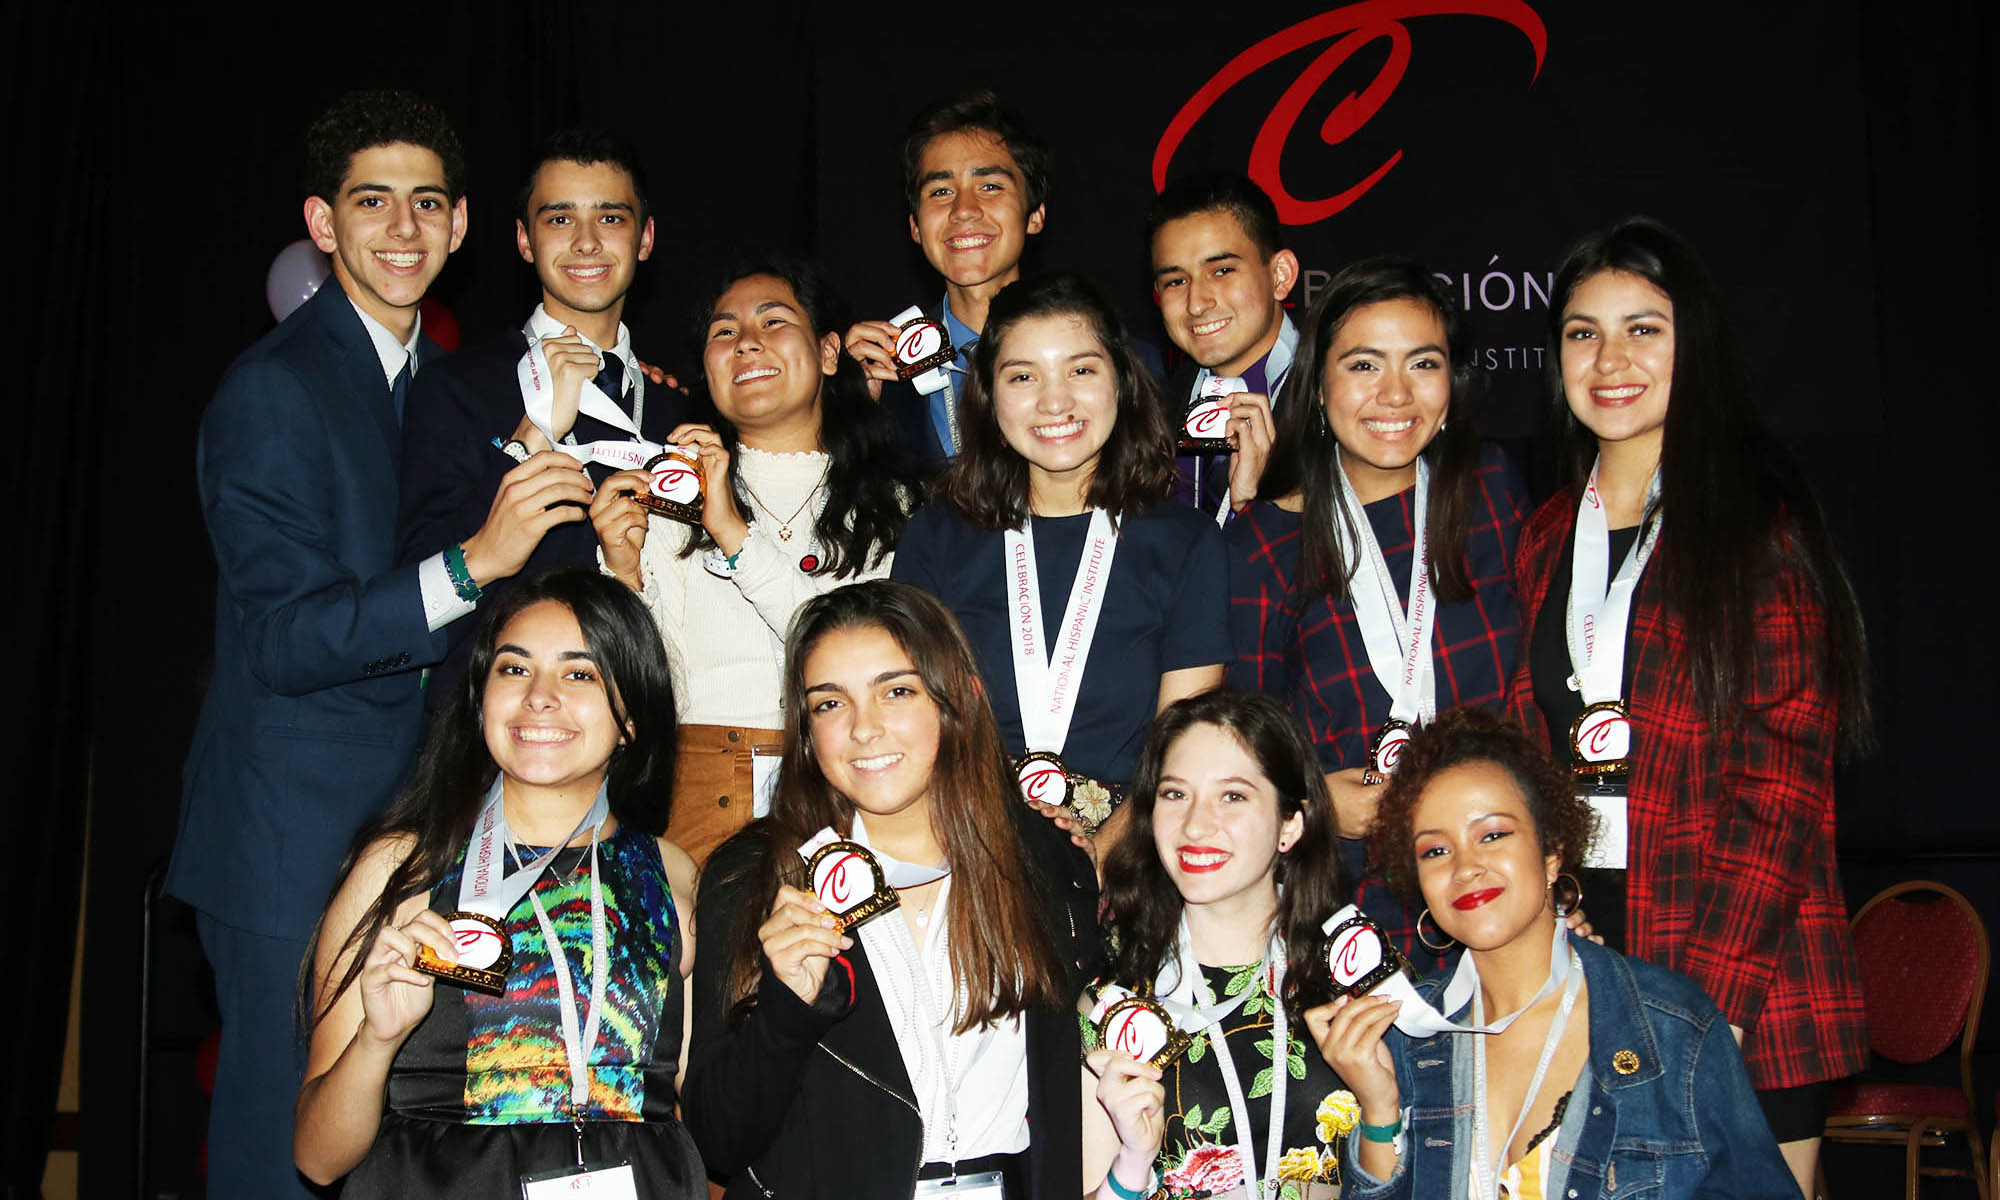 Creer Para Ver, the winning LDZ team at Celebracion 2018, poses with their first place medals.